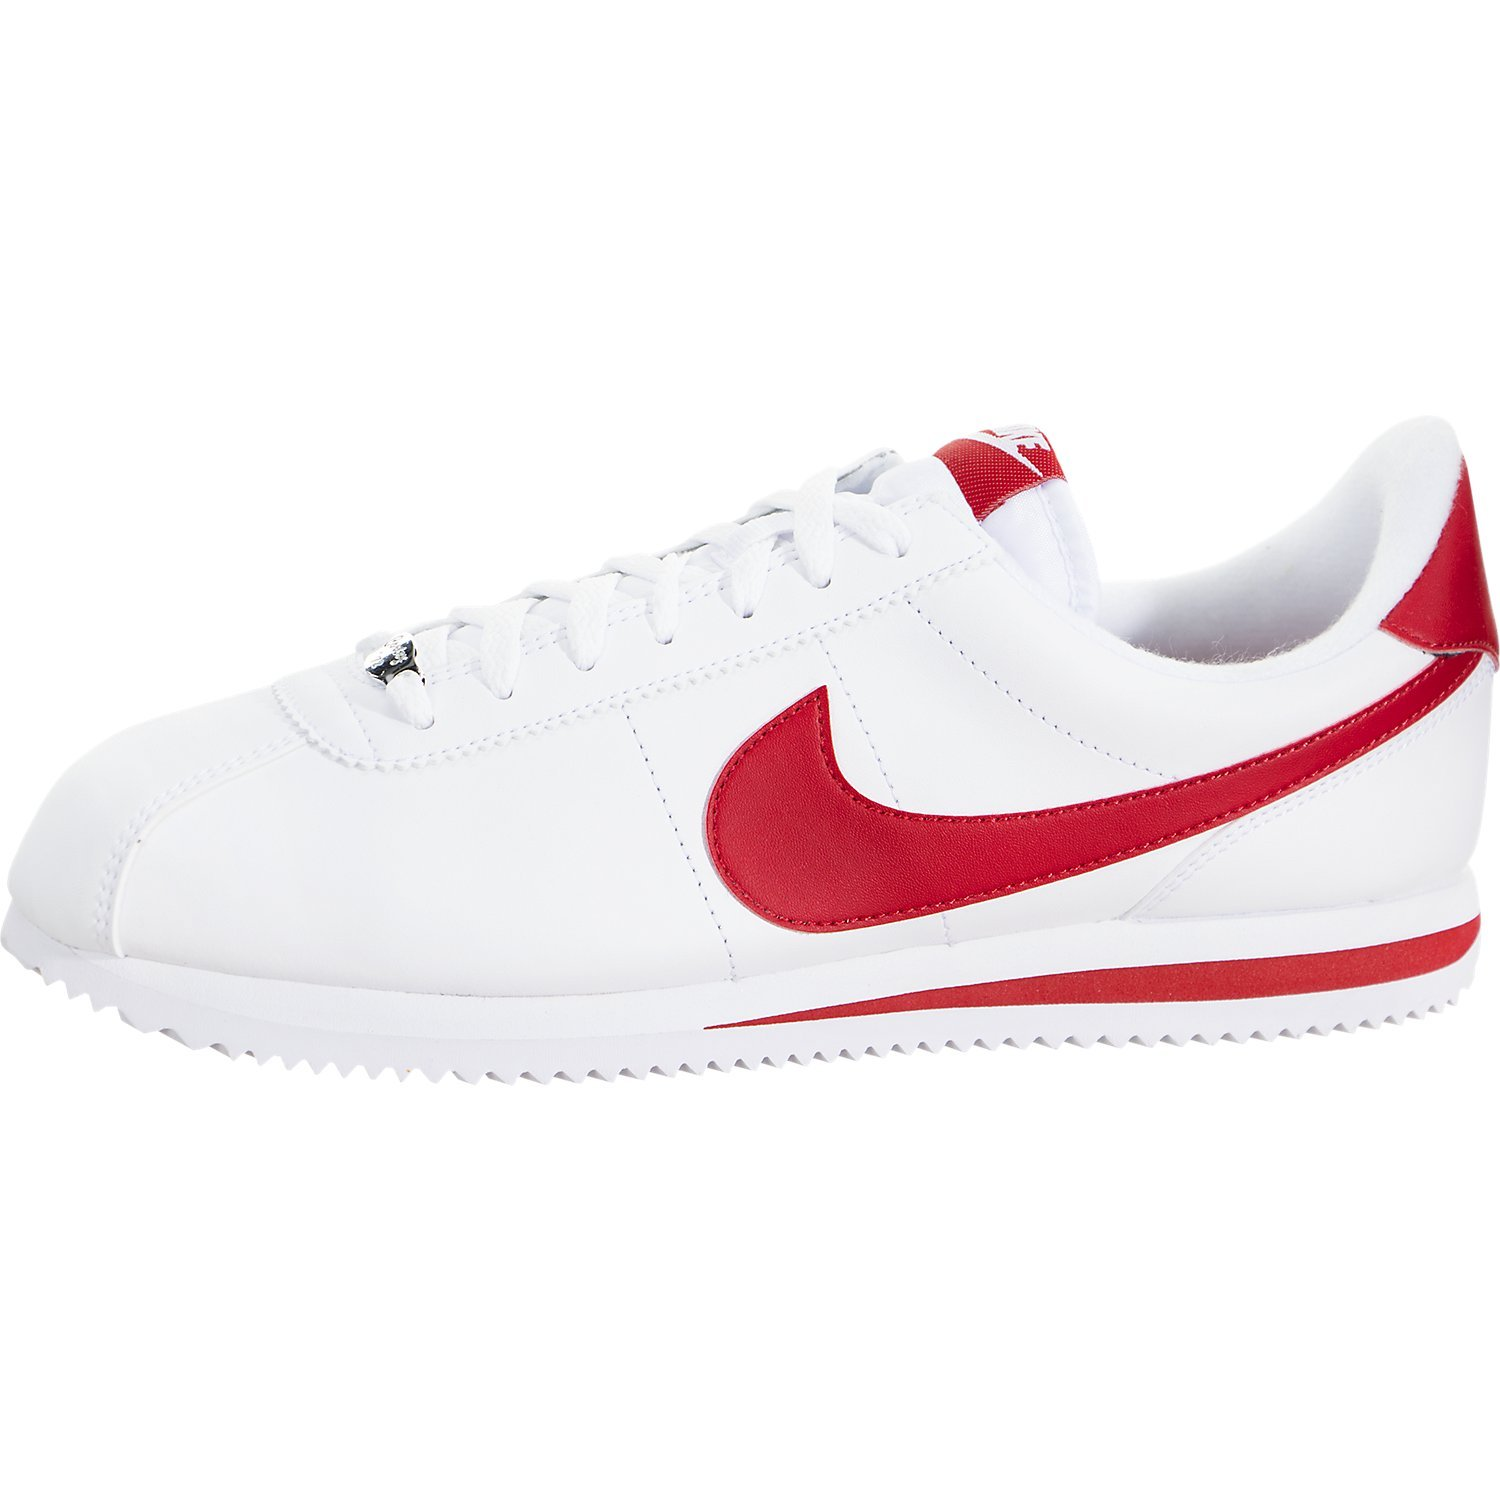 factory authentic 01e5d c3f61 Galleon - Nike Mens Cortez Basic Leather Casual Shoe White Red 819719-101 12